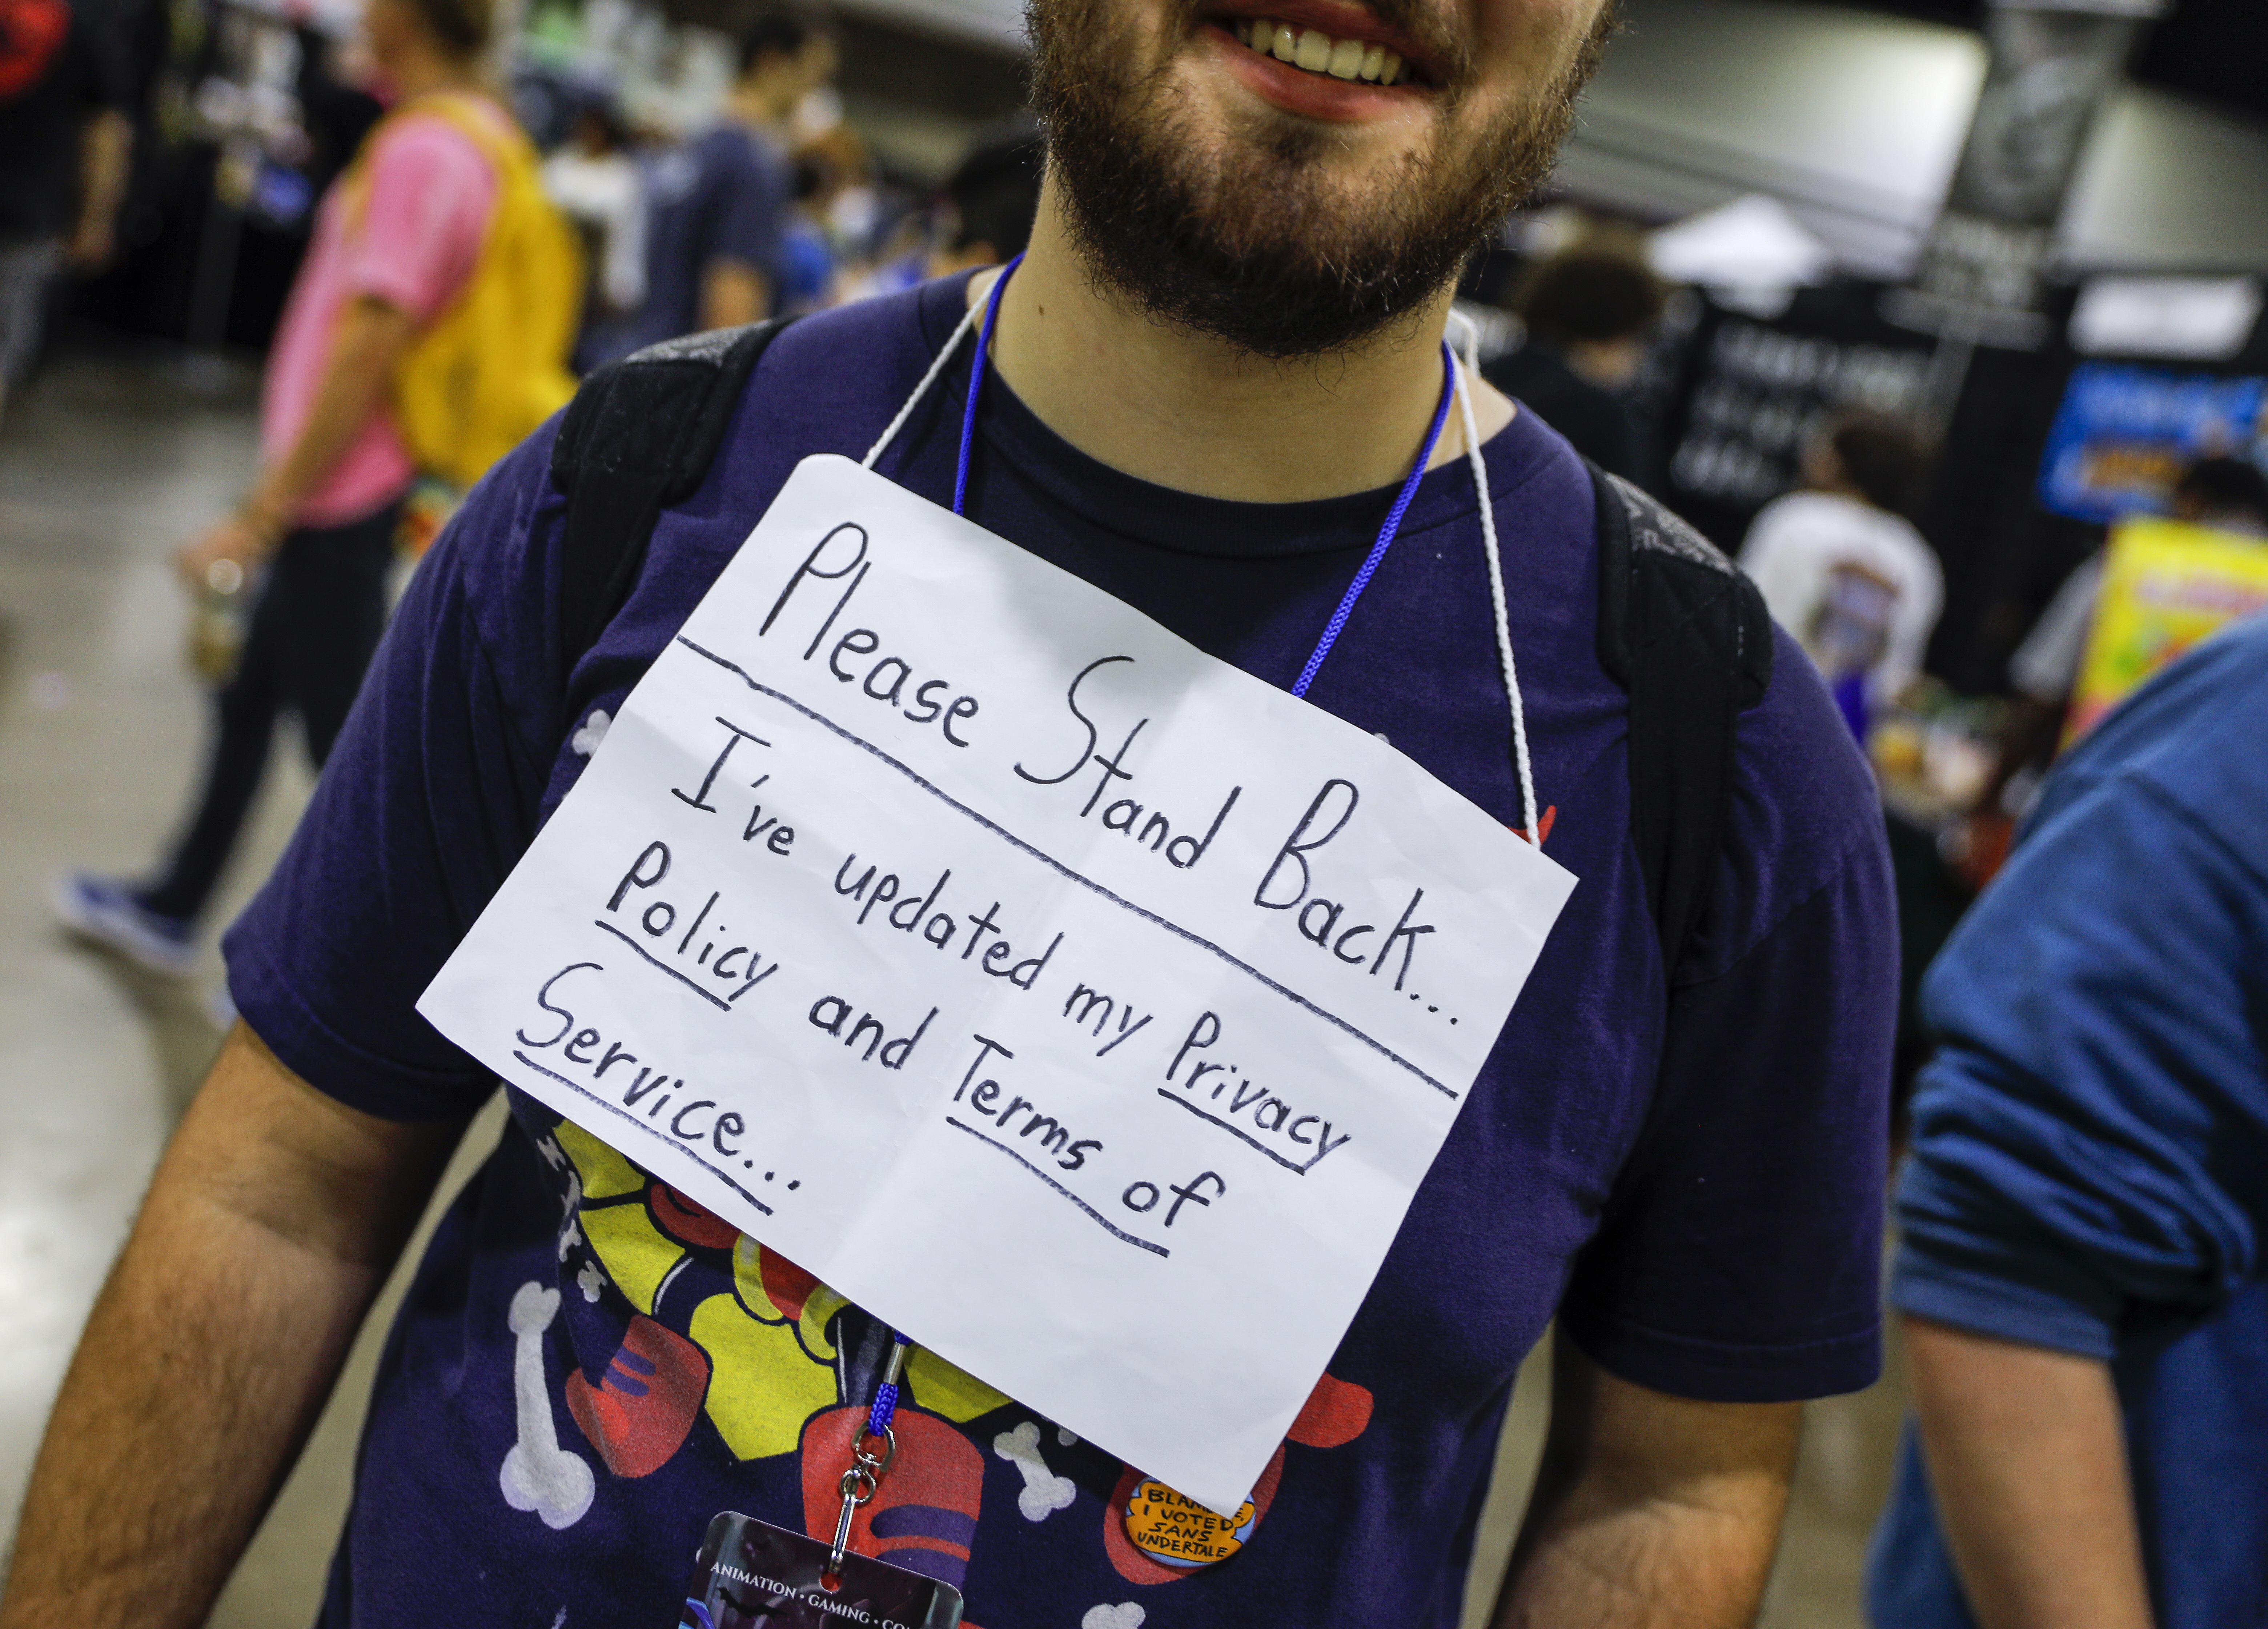 epa06767700 A costumed participant comments on the new General Data Protection Regulation implementation, GDPR, while attending the Momocon anime and gaming convention at the Georgia World Congress Center in Atlanta, Georgia, USA, 27 May 2018. The four-day gathering features many cosplay costumed participants.  EPA-EFE/ERIK S. LESSER